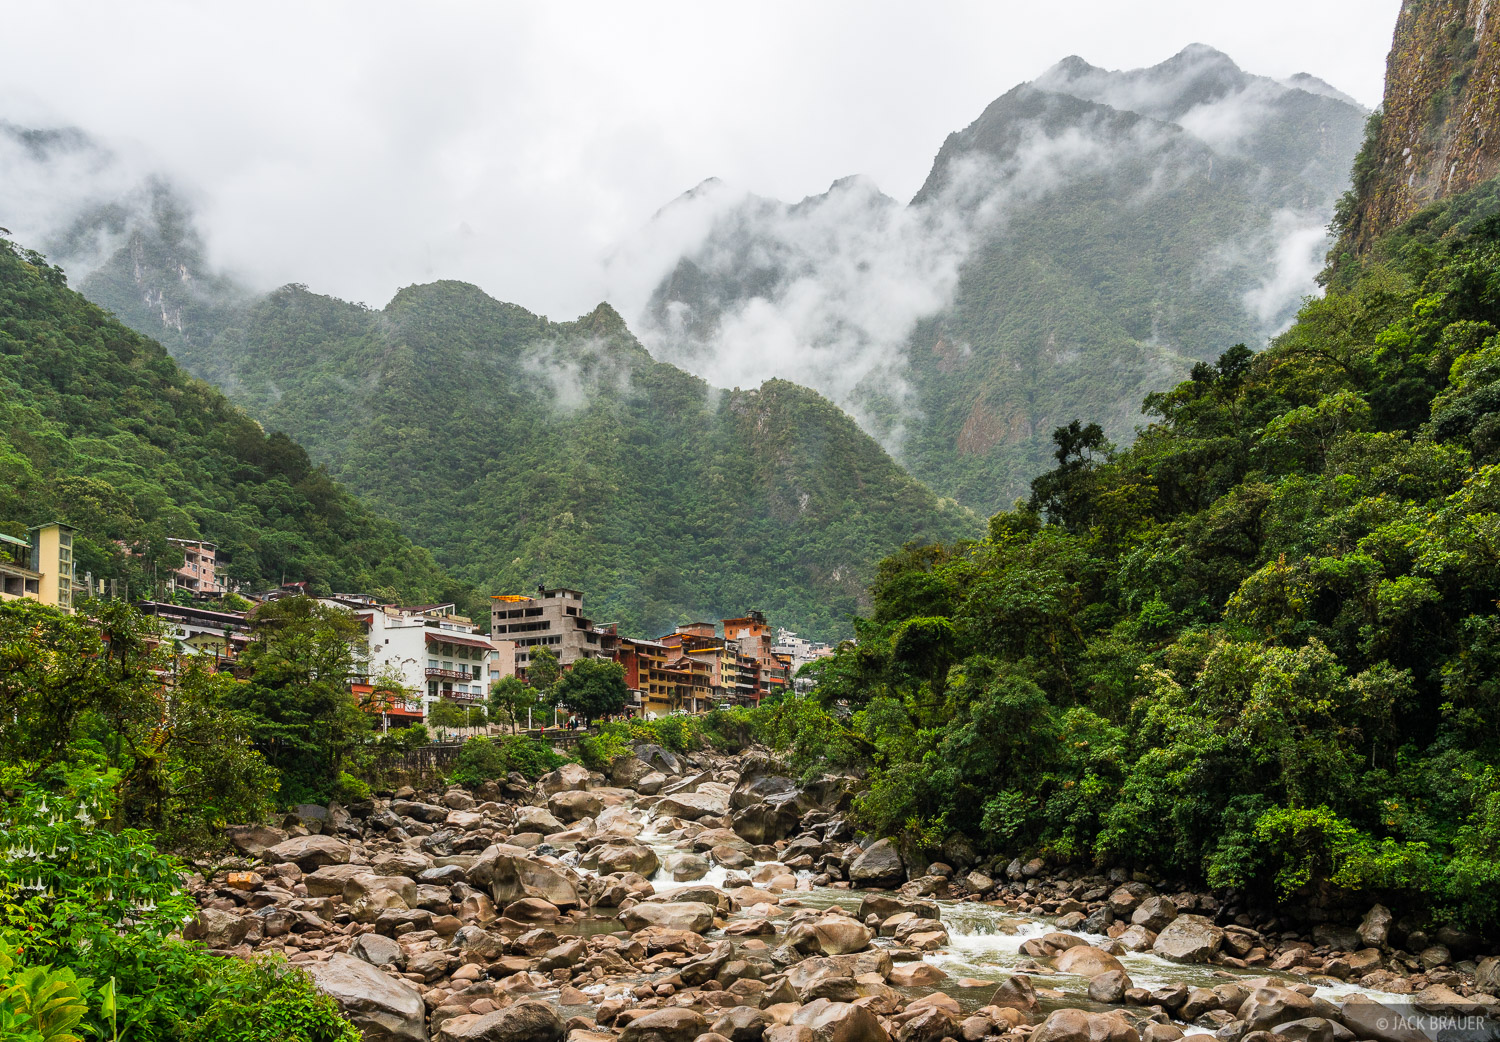 Aguas Calientes, Cordillera Vilcabamba, Peru, Rio Urubamba, South America, photo